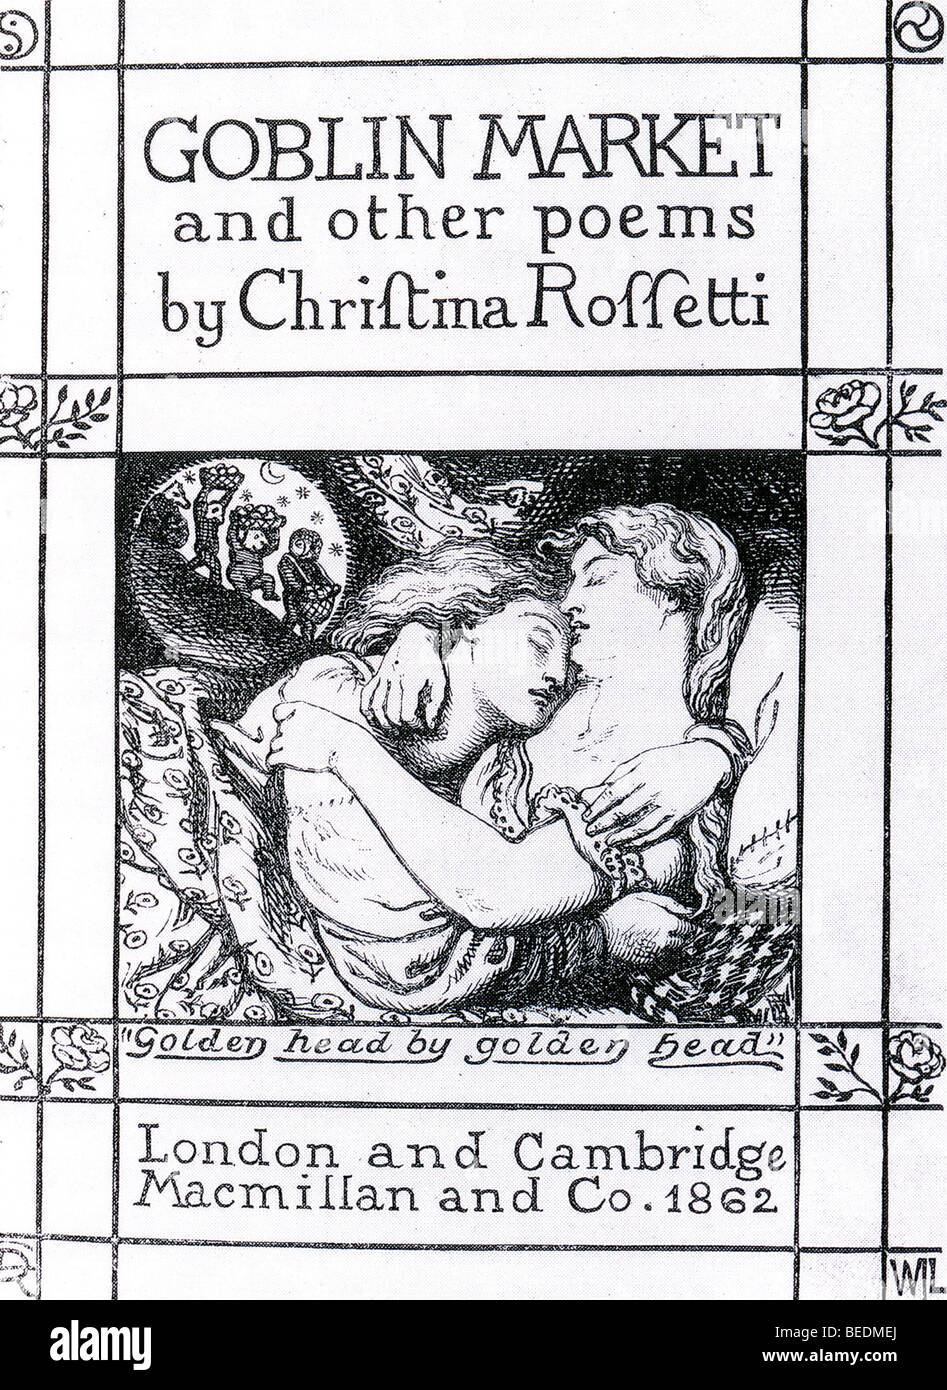 GOBLIN MARKET An 1862 collection of poems by Christina Rossetti with artwork by her brother Dante Gabriel - Stock Image